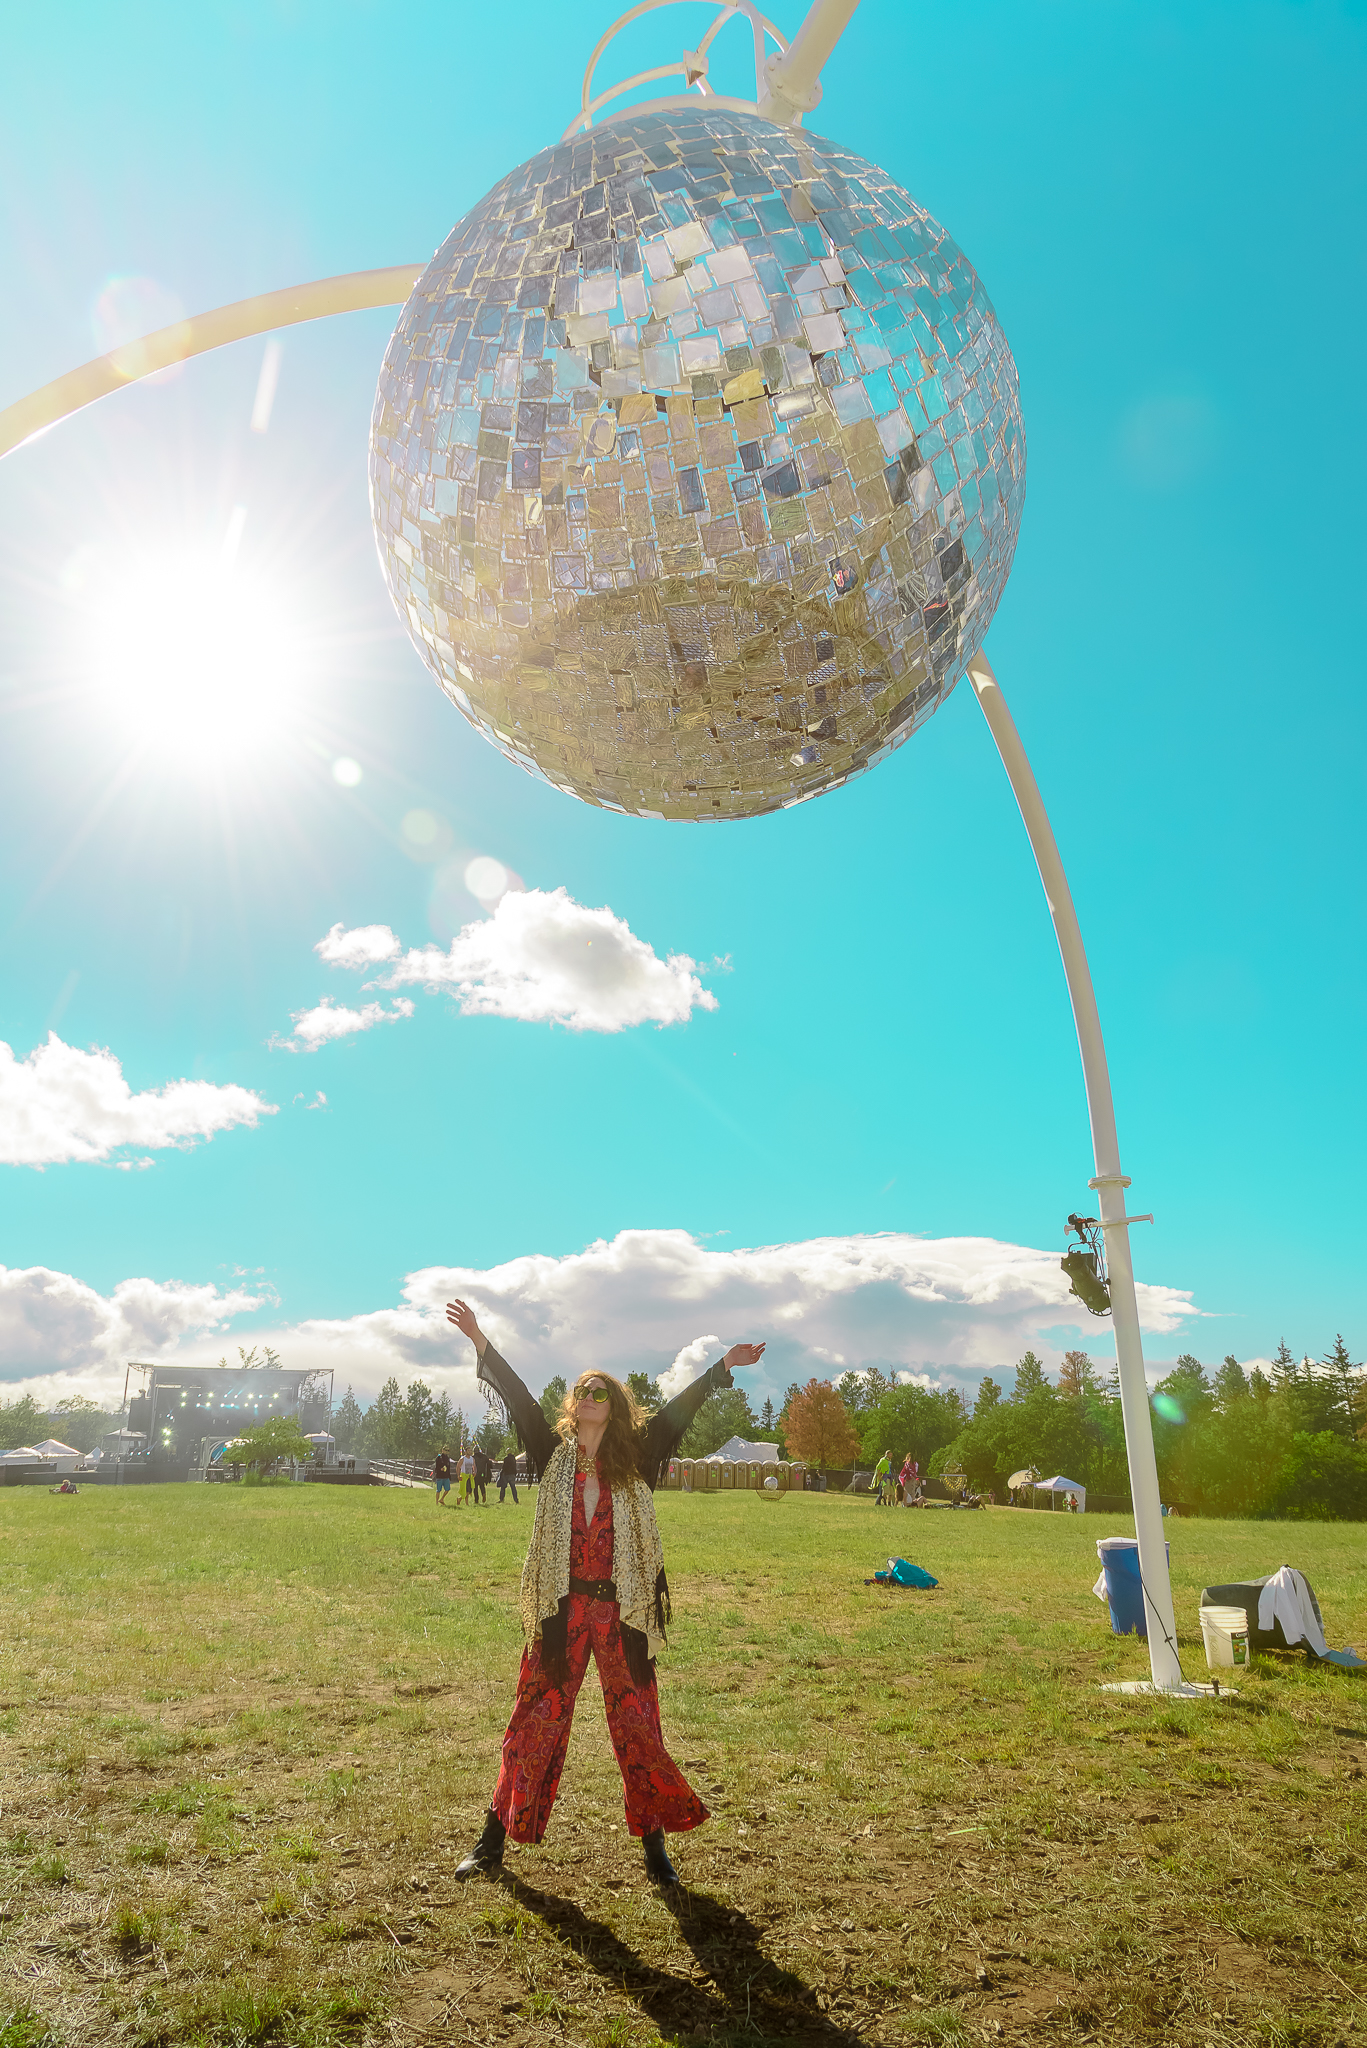 You know where to find her, under the giant disco ball, duh. What The Festival. Dufur, OR.